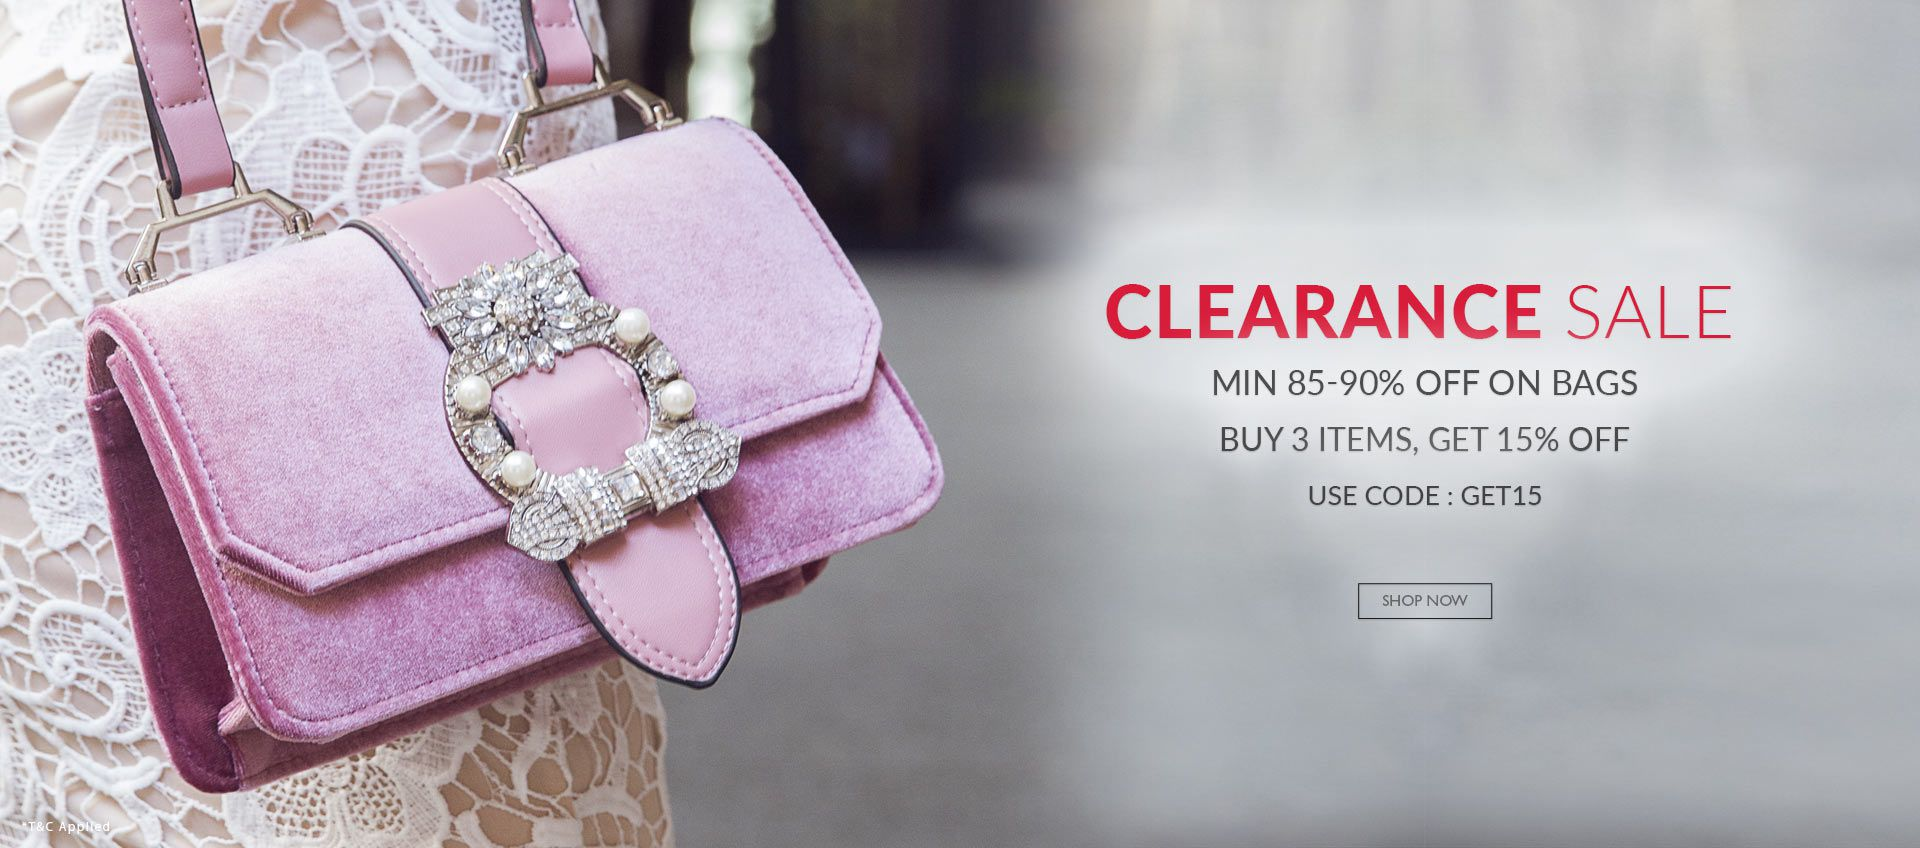 Clearance Sale Bags